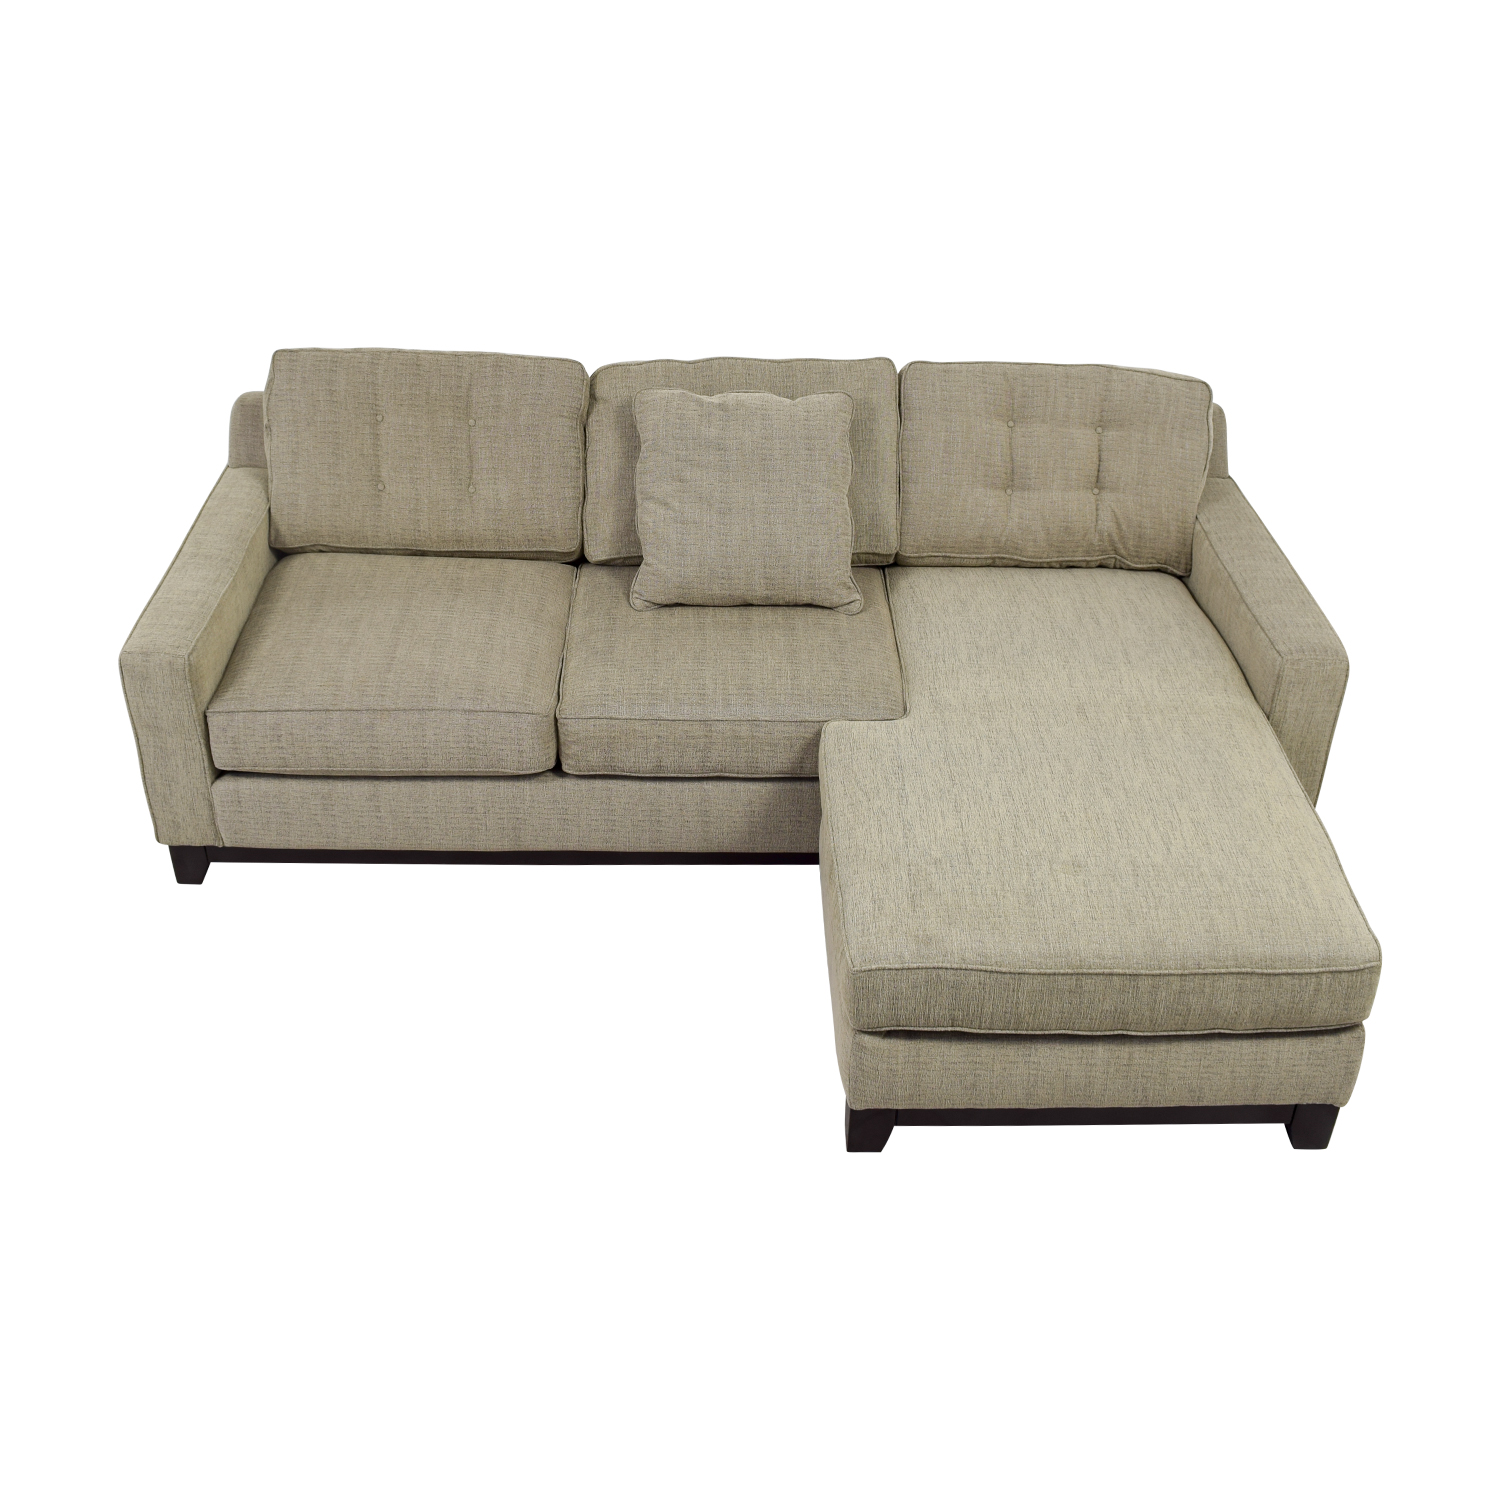 Radley Radley Beige Semi-Tufted Chaise Sectional nj